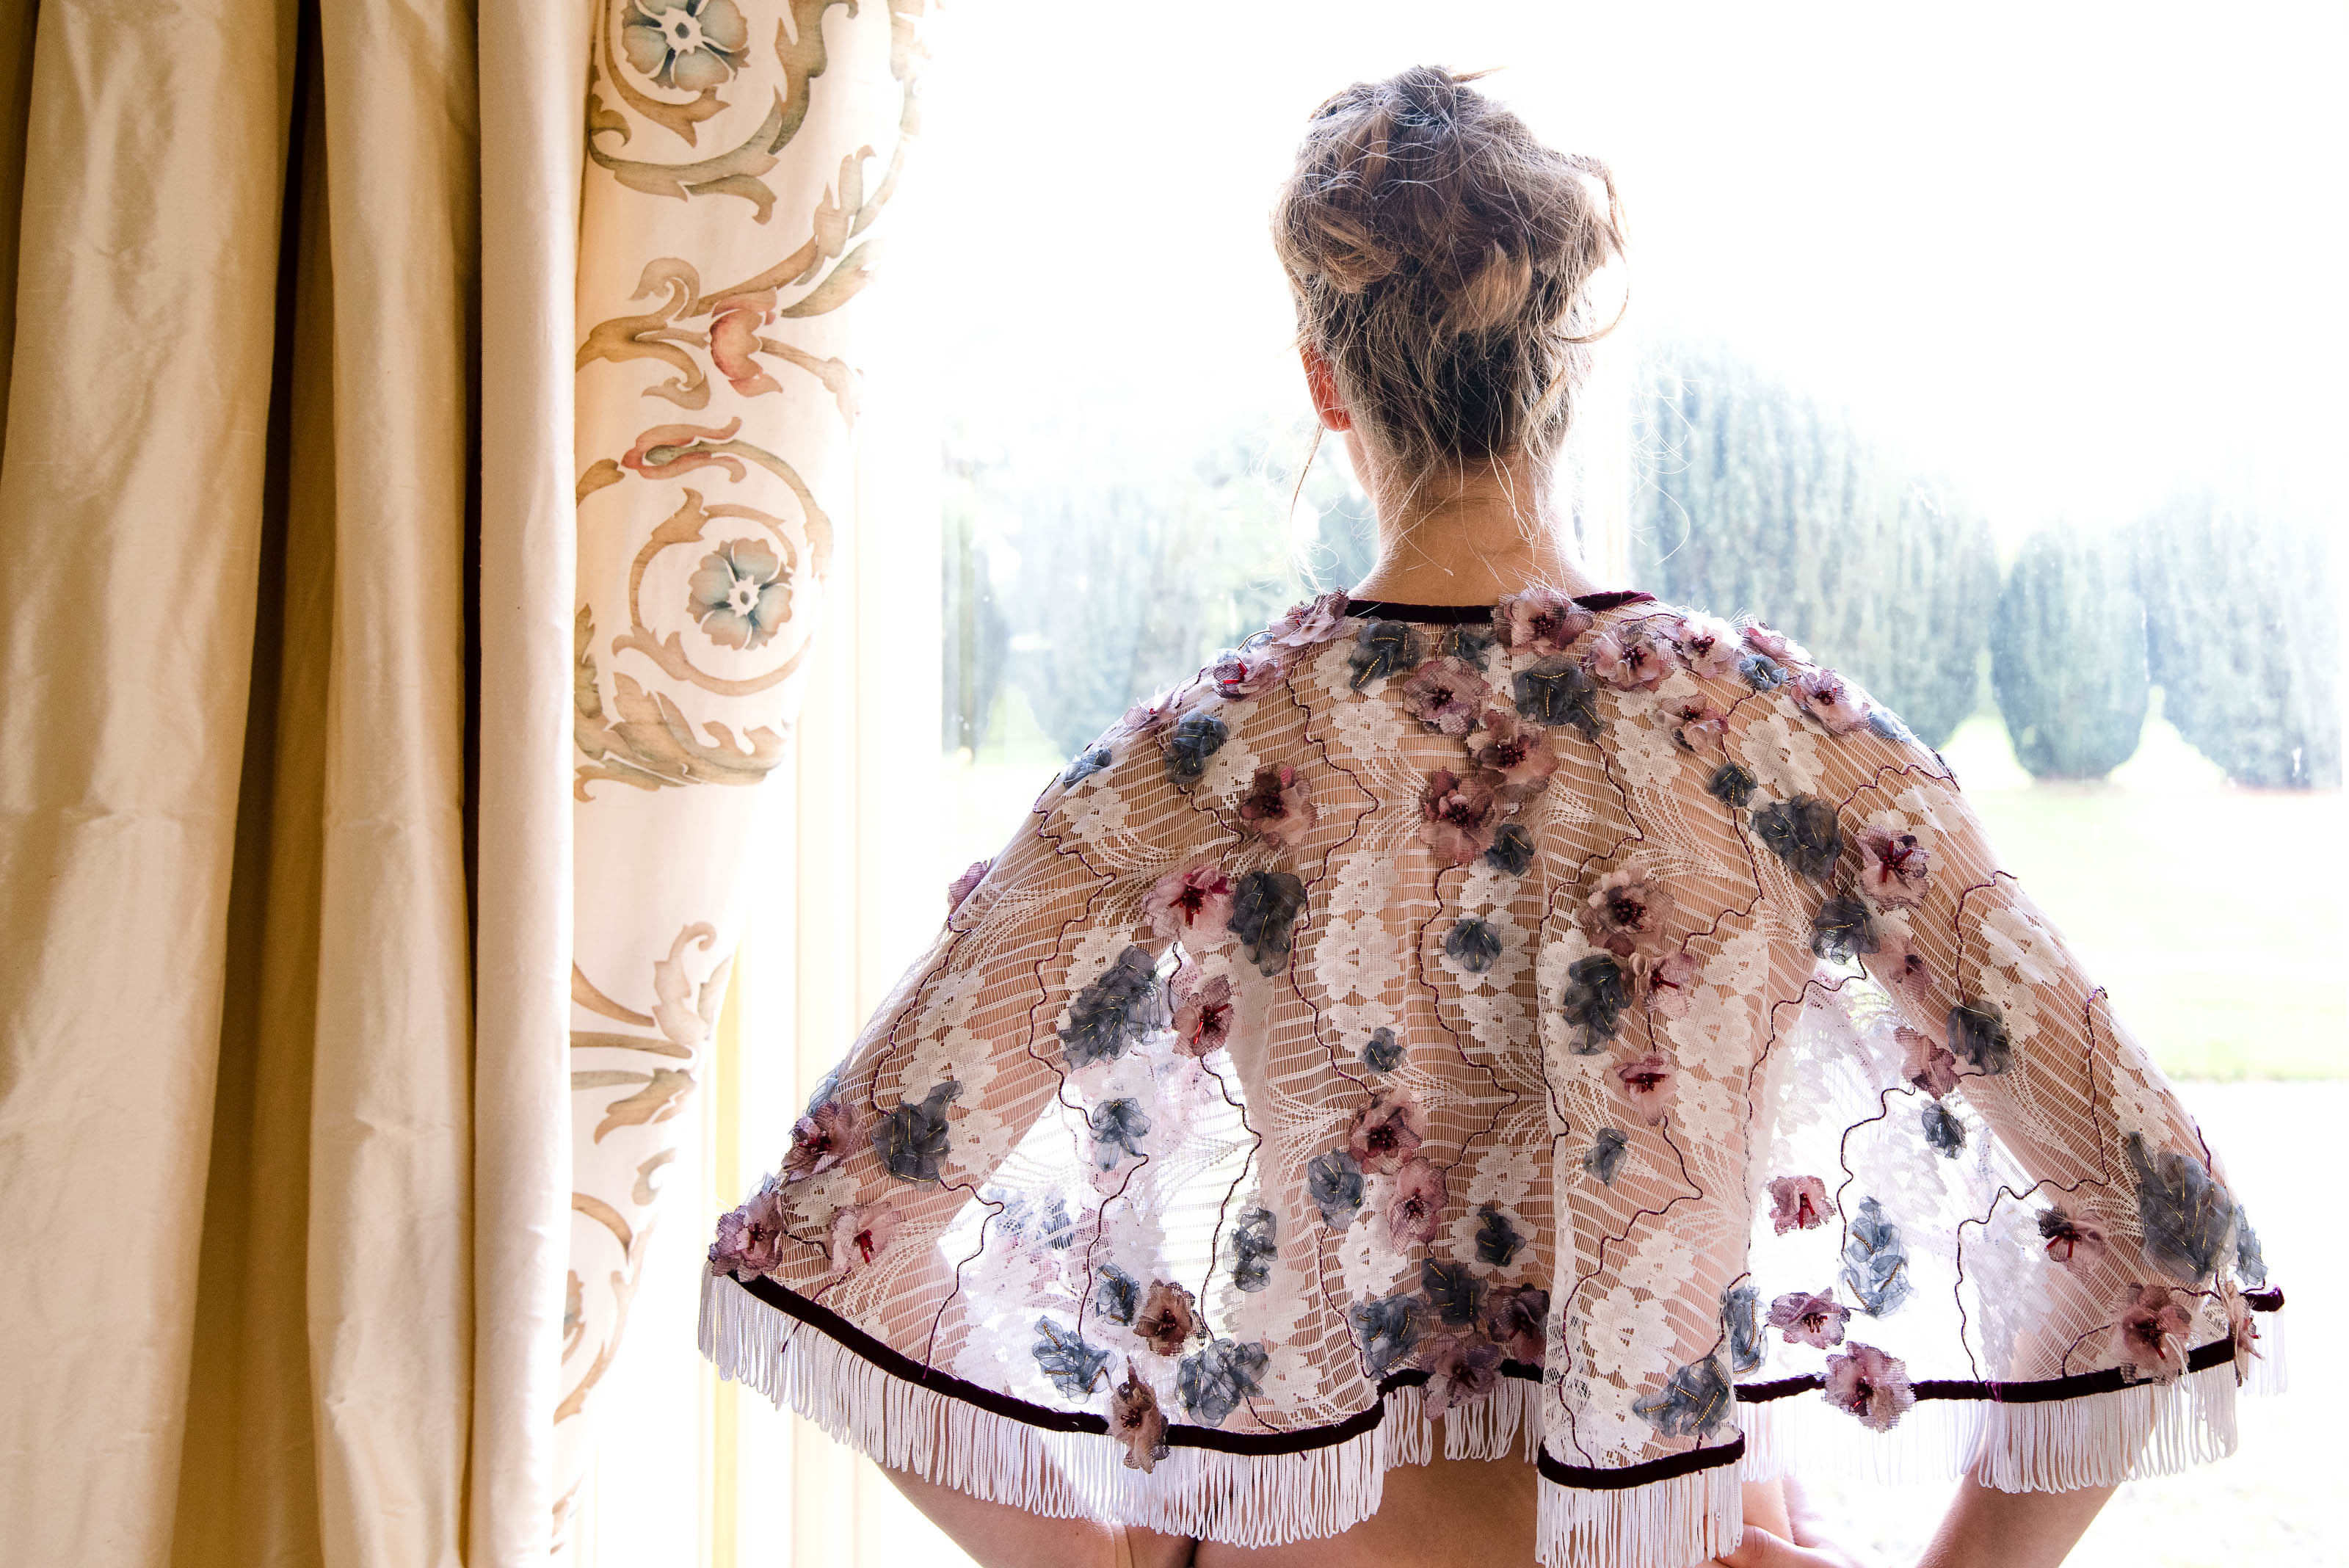 Embroidery and embellishments - how to stand out with an alternative look on your wedding day